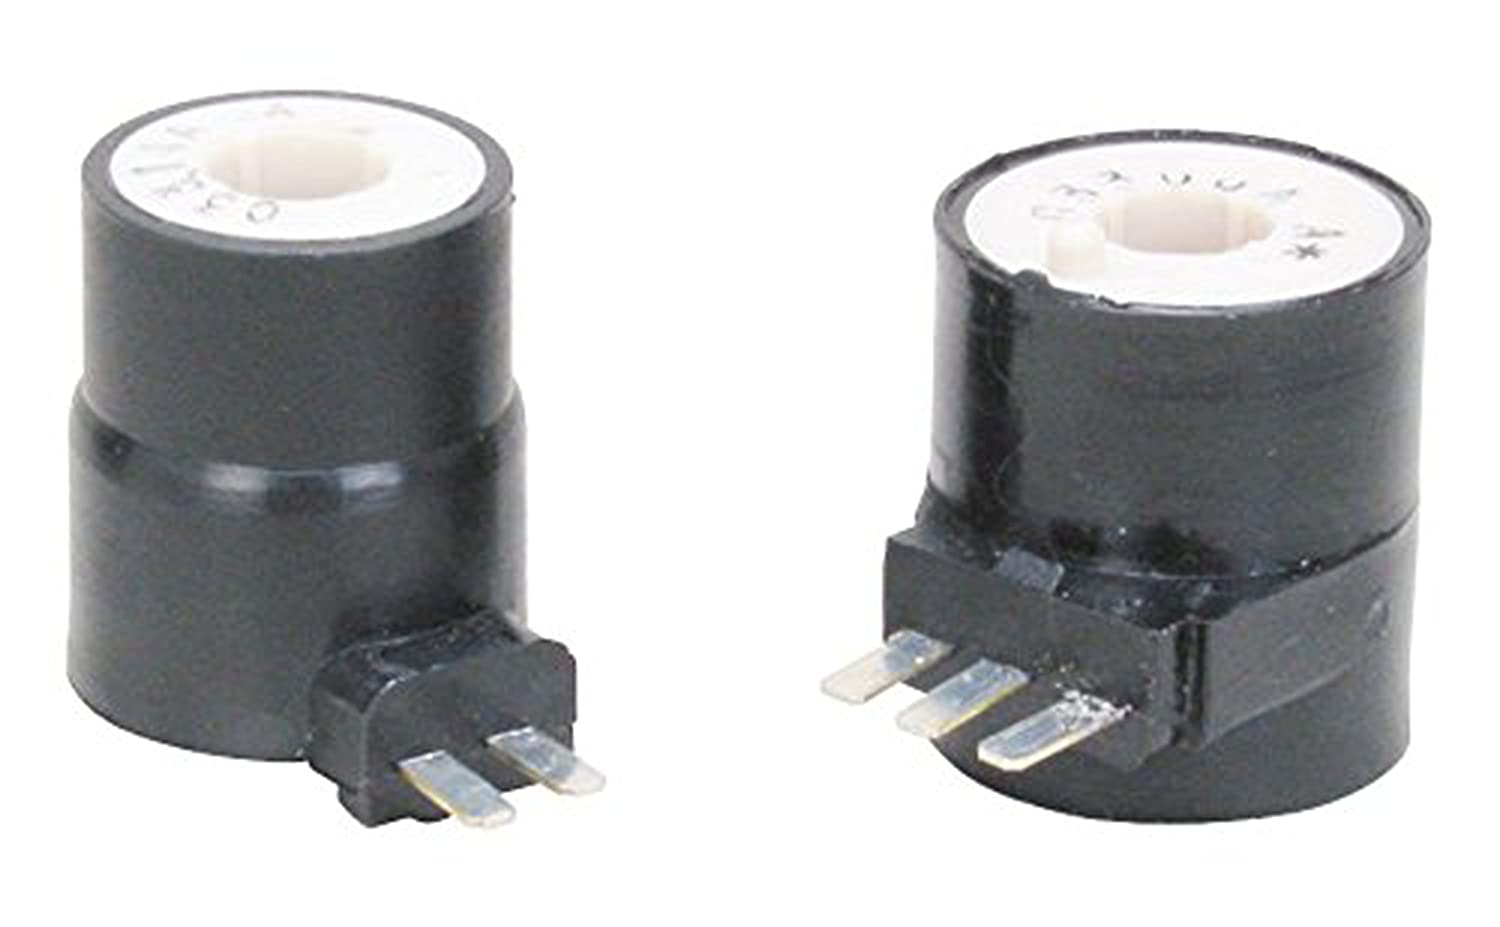 Repairwares Universal Gas Valve Ignition Solenoid Coil Kit 306105 694540 279834 5303931775 08015679 289622 DE382 for Gas Dryers and Appliances